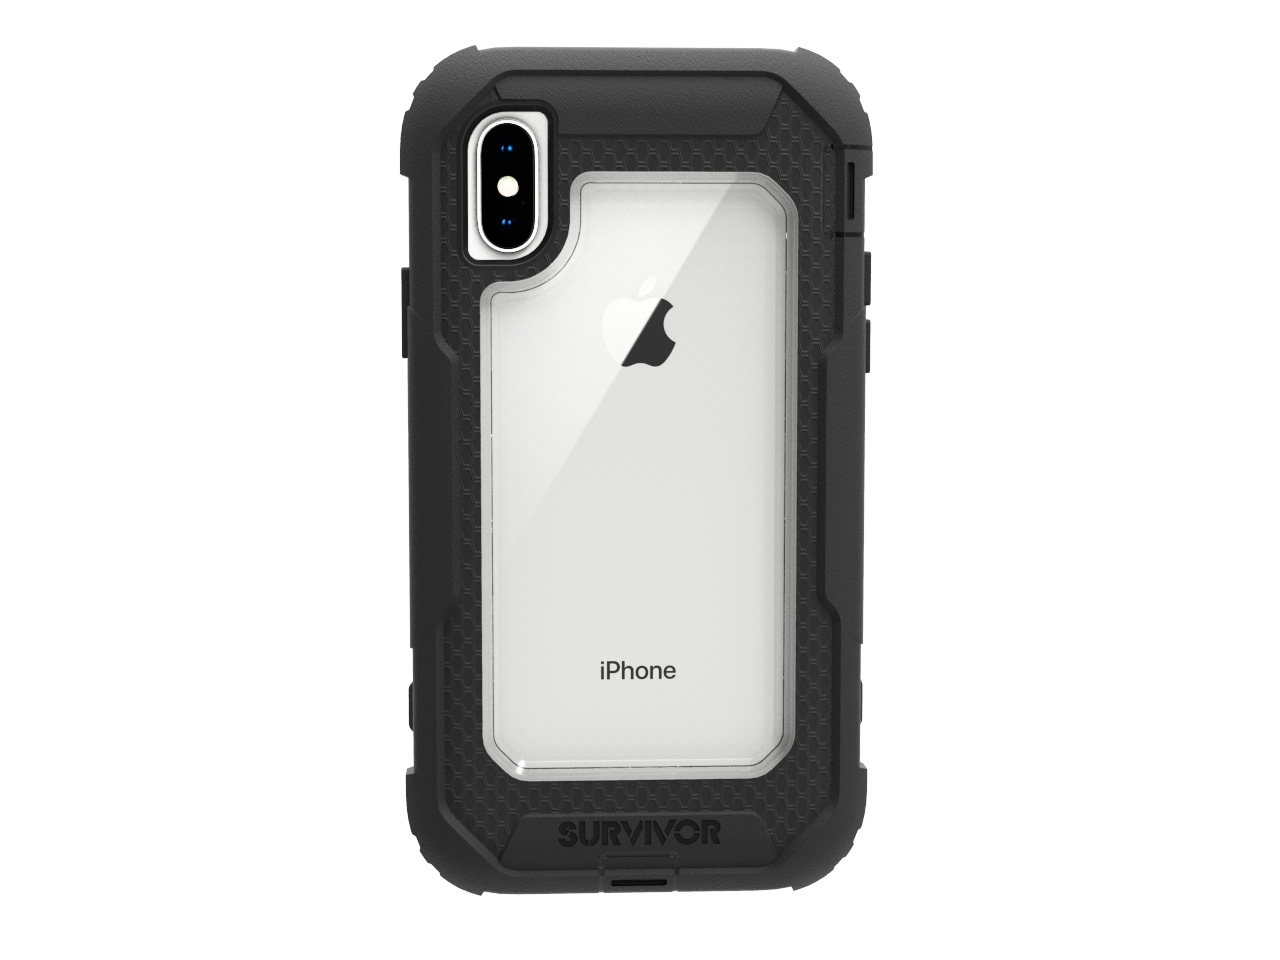 Griffin, iPhone X Rugged Case, Survivor All-Terrain with Belt Clip, Impact Resistant, 10 ft drop protection, Black Clear by Griffin Technology